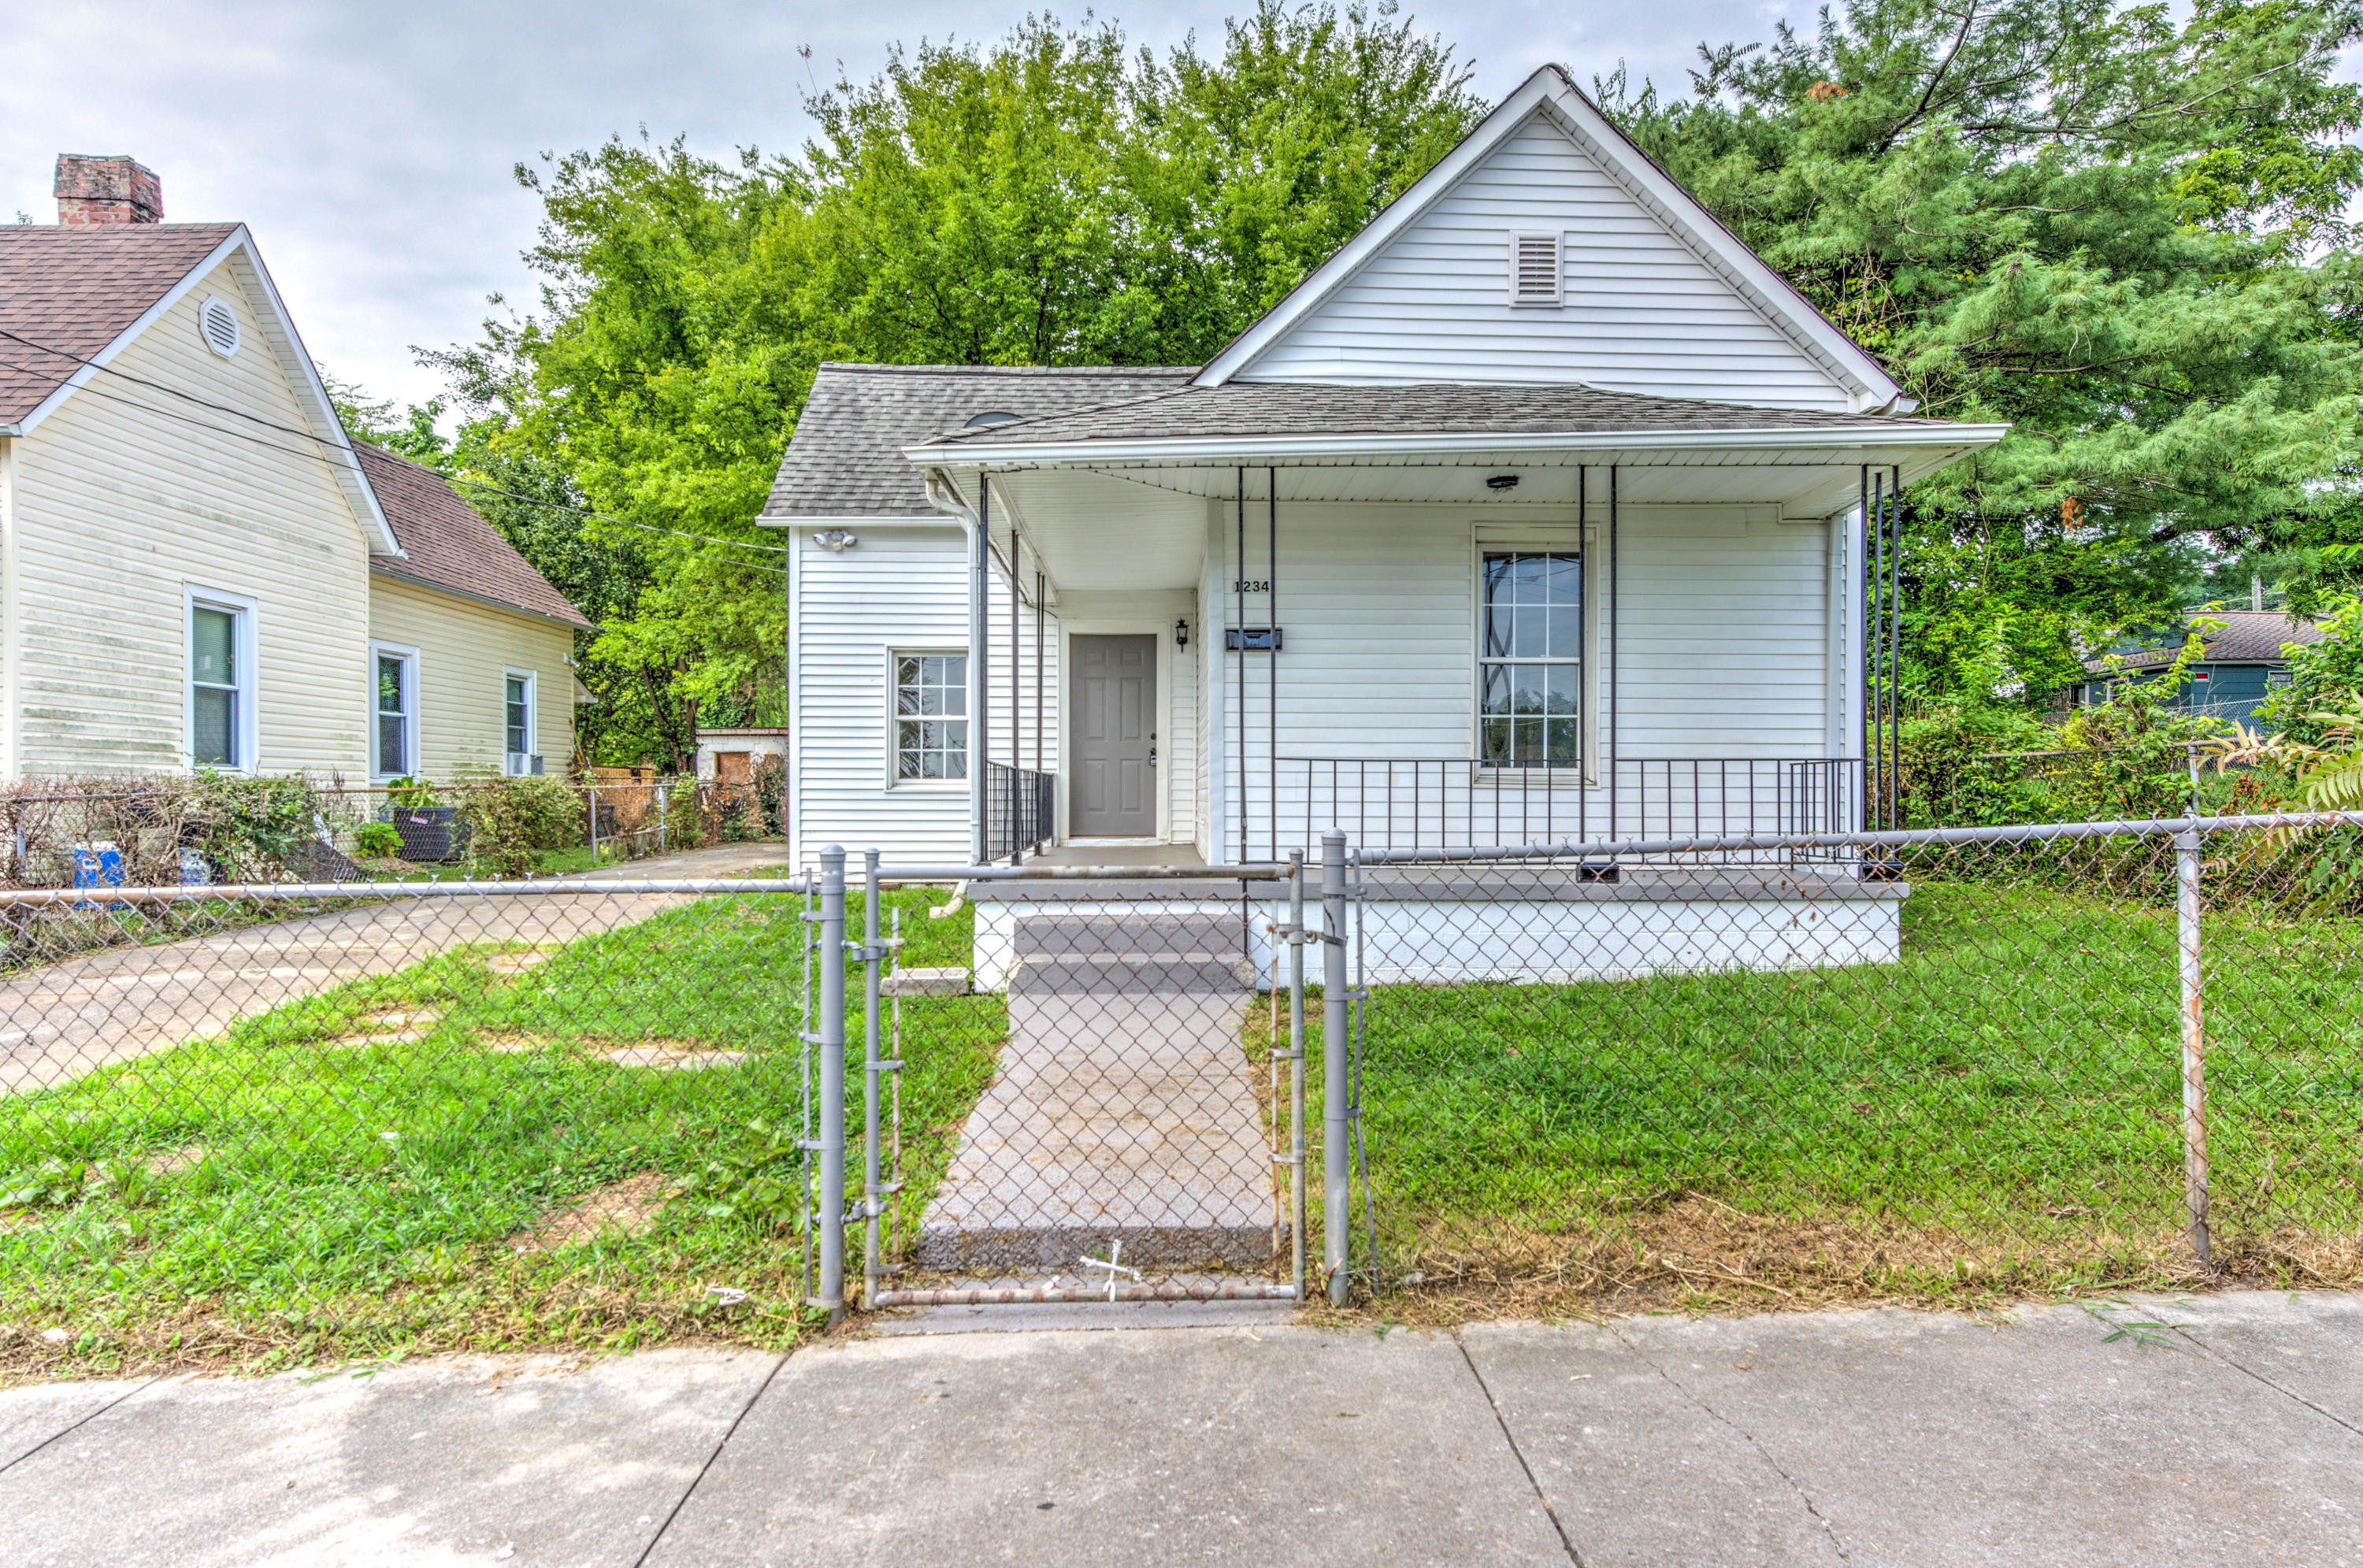 1234 Callaway St, Knoxville, Tennessee 37921, 3 Bedrooms Bedrooms, ,1 BathroomBathrooms,Single Family,For Sale,Callaway,1053668